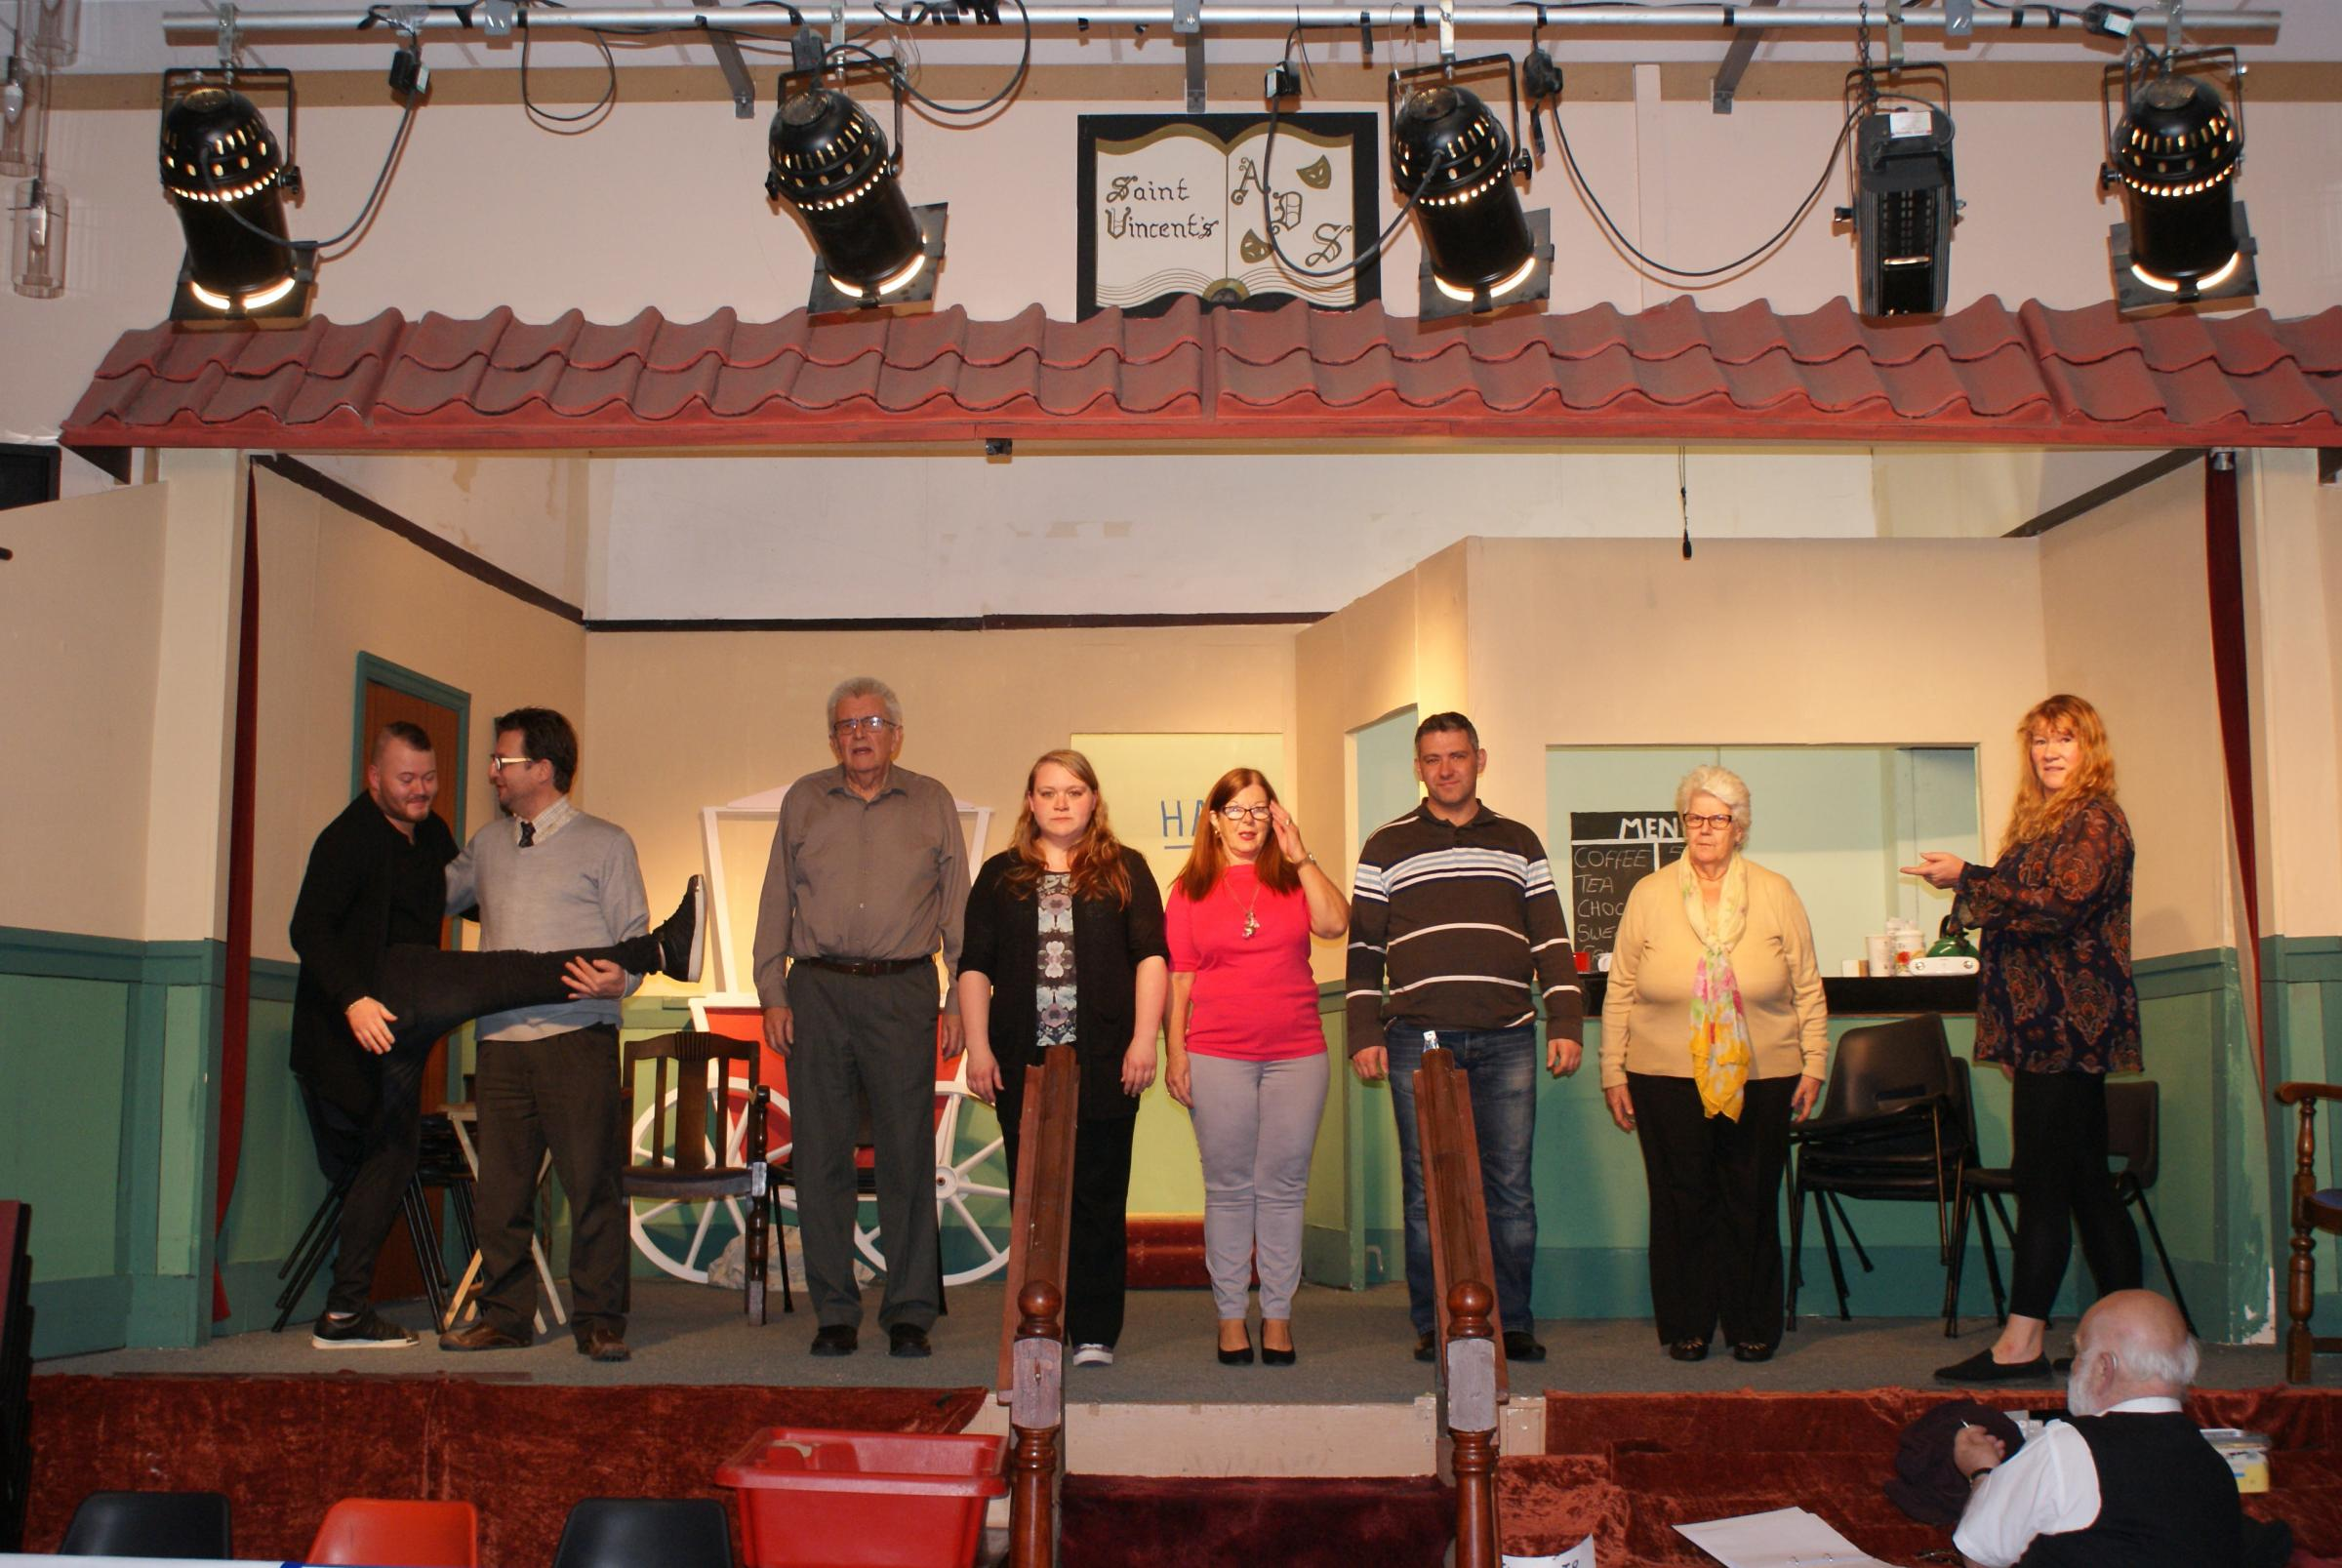 St Vincent's Dramatic Society get ready to stage Out of Focus